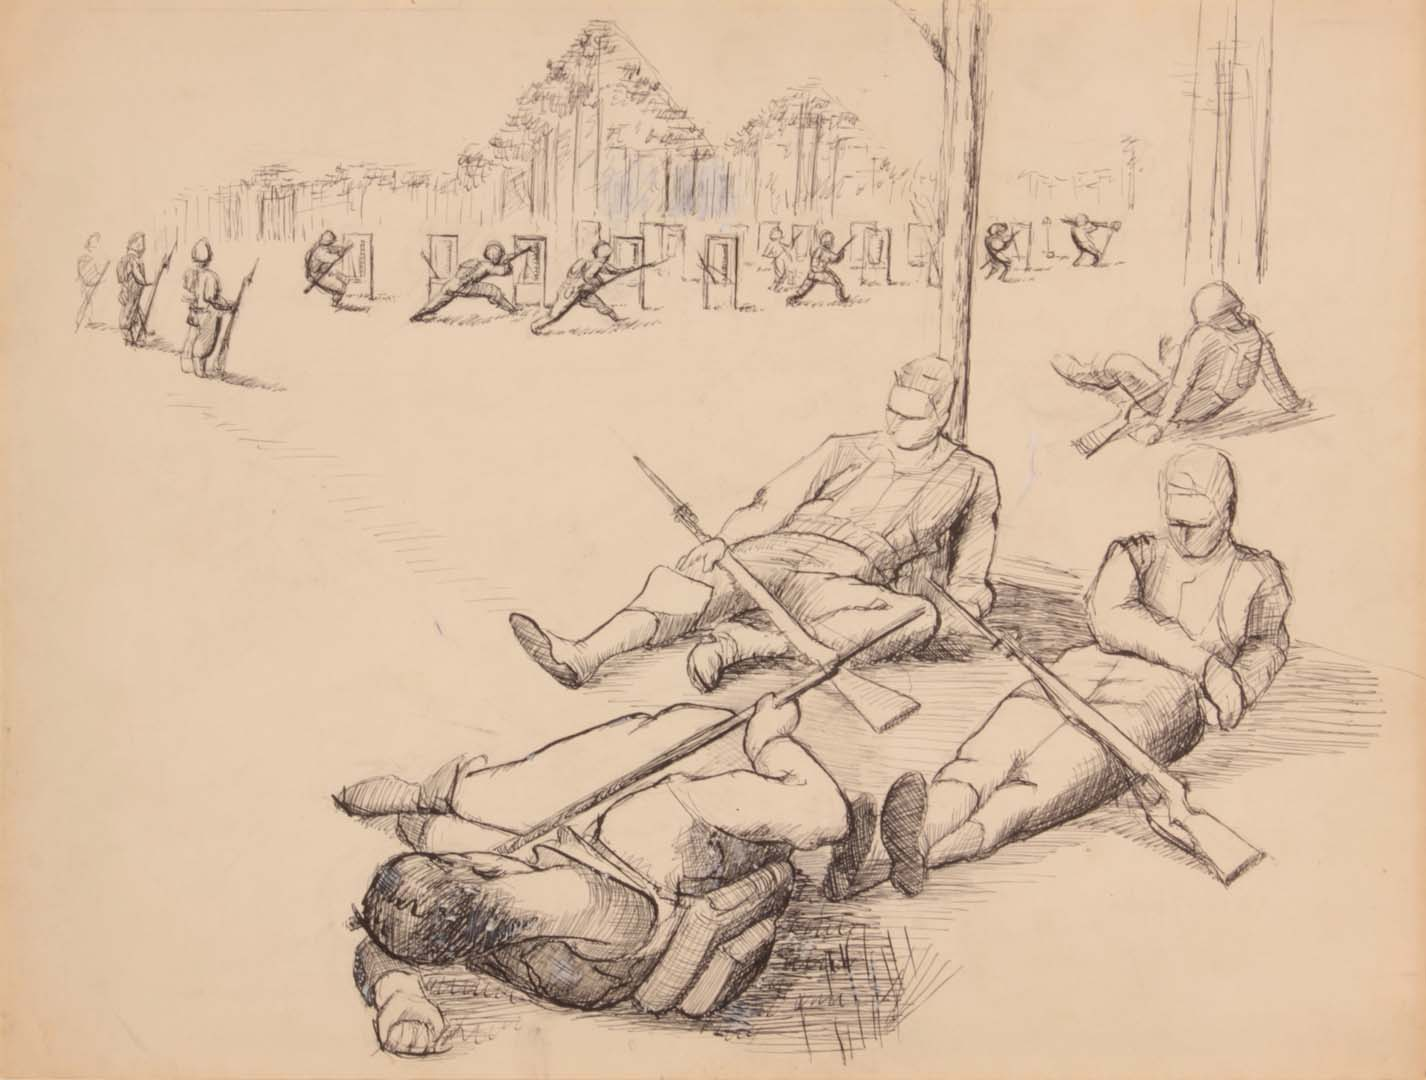 "1944 Soldiers Resting (Study for Bayonet Practice) Pen and Ink on Paper 10.6875"" x 13.9375"""